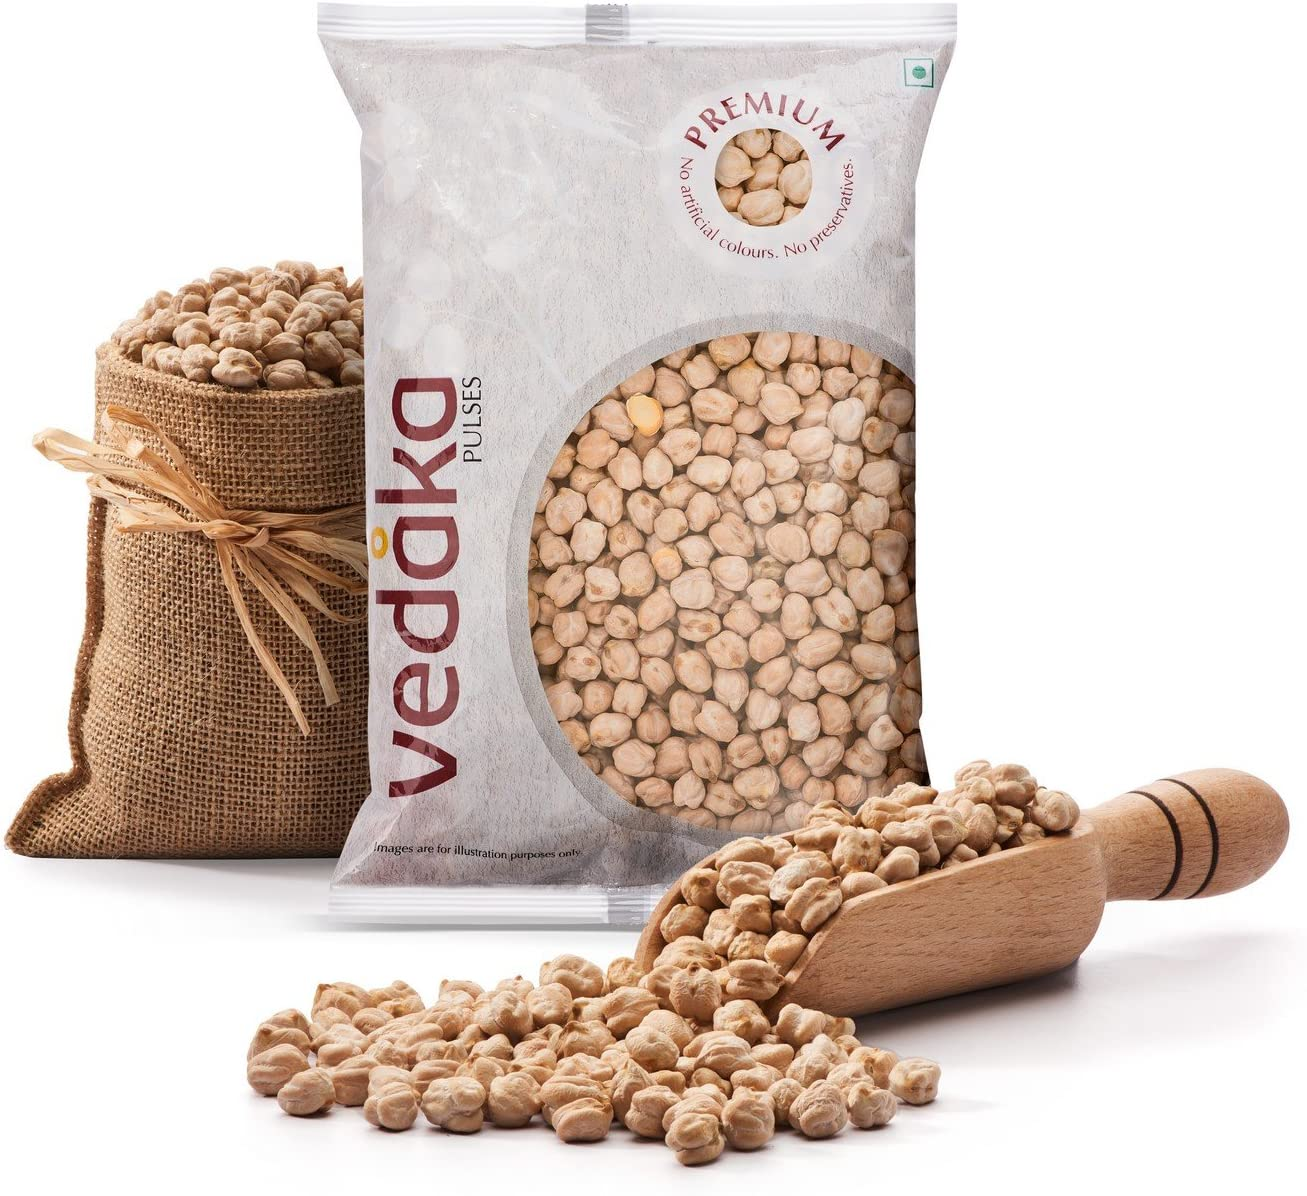 Dals, Pulses & Grains | Get Home deliveries within 2 days | Starting from